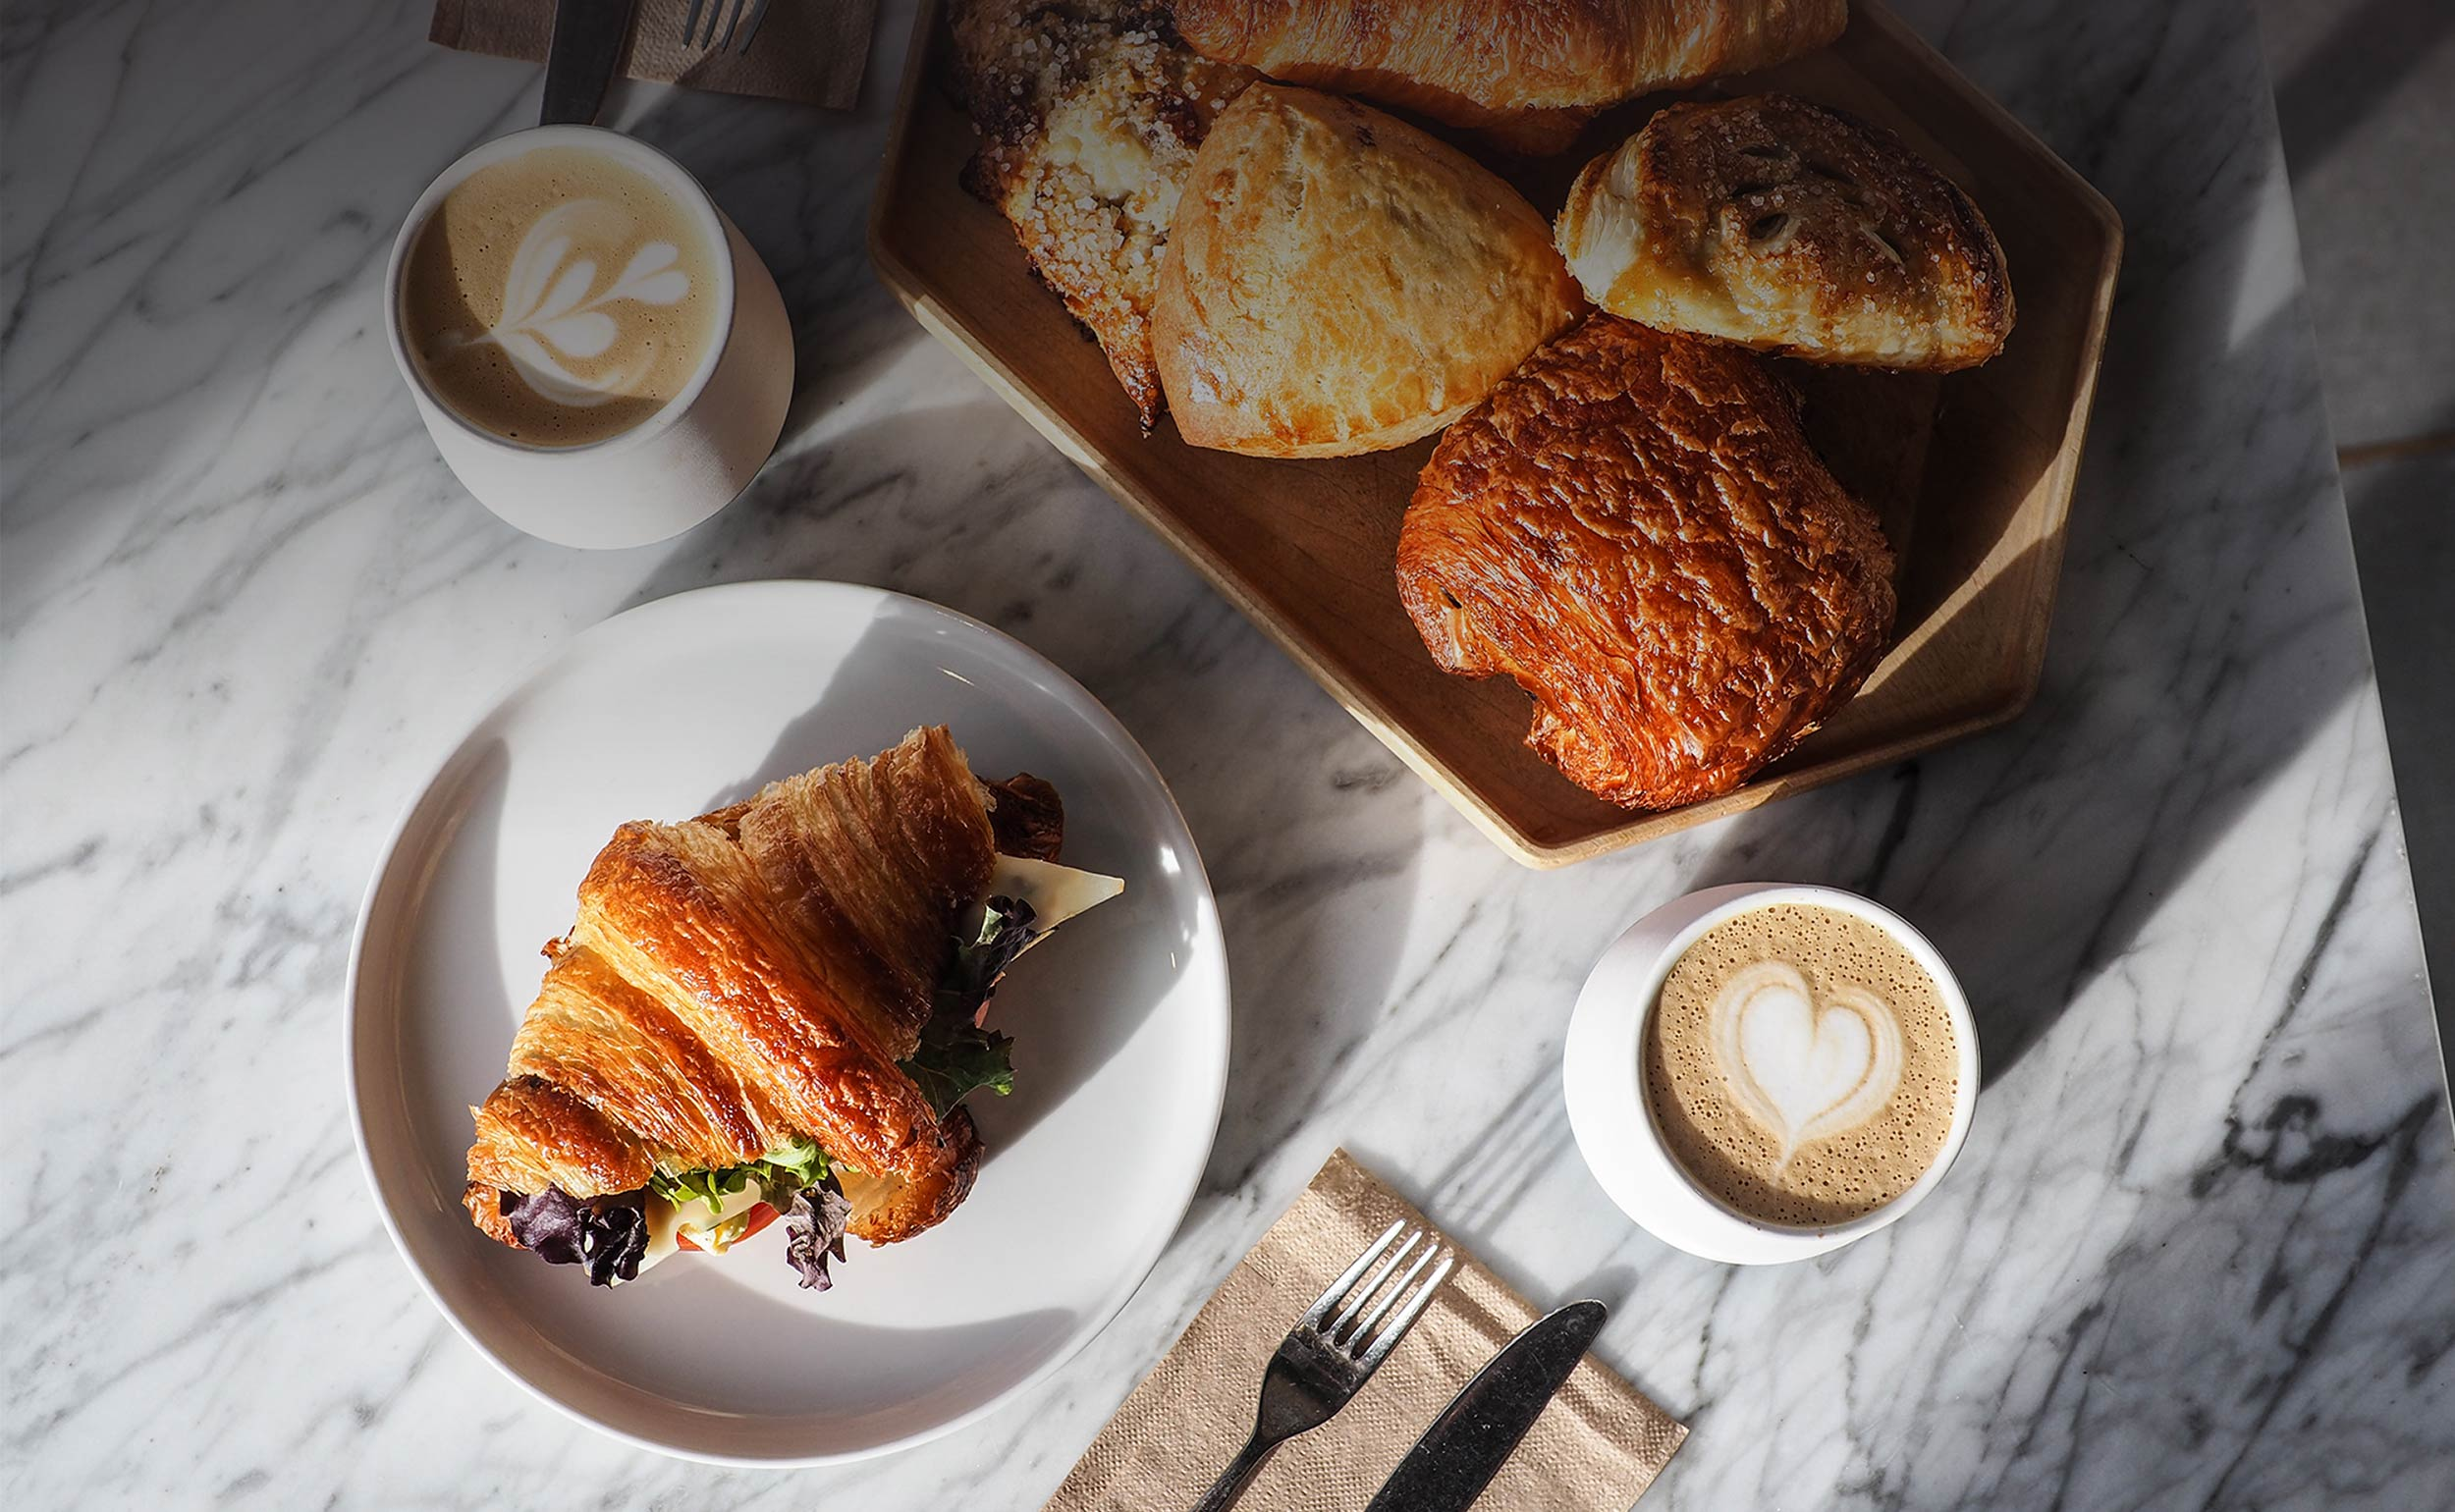 Top down view of a marble breakfast table, with a breakfast croissant, lattes with latte art, and a geometric wood tray with an assortment of pastries: pain au chocolate, apple turnover, scones, and a plain croissant.